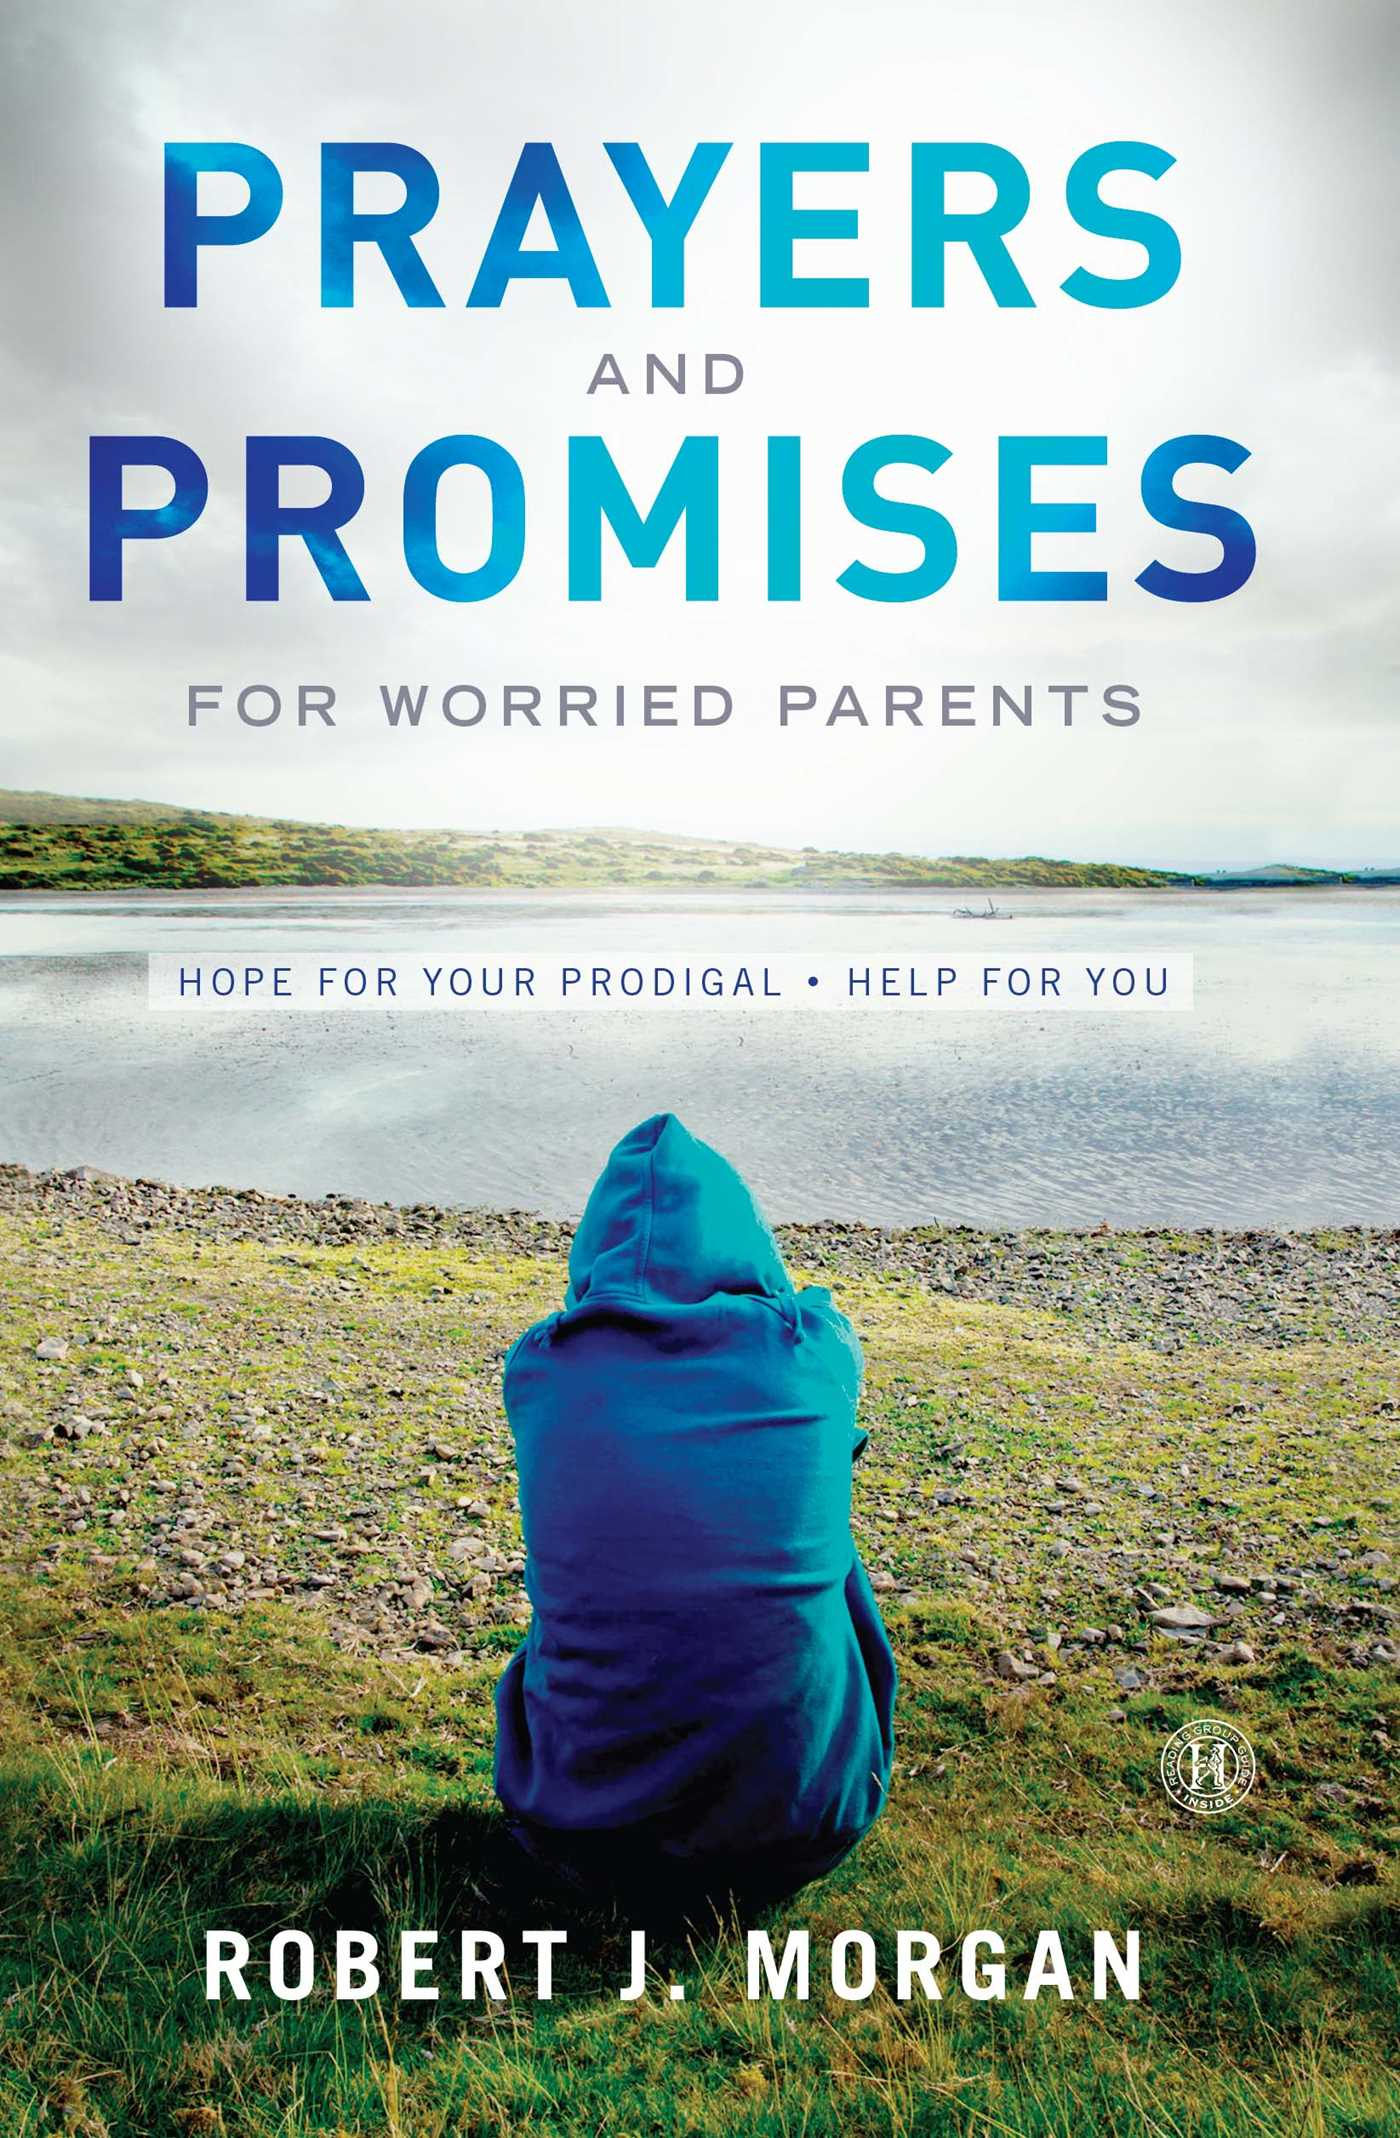 Prayers-and-promises-for-worried-parents-9781476740676_hr